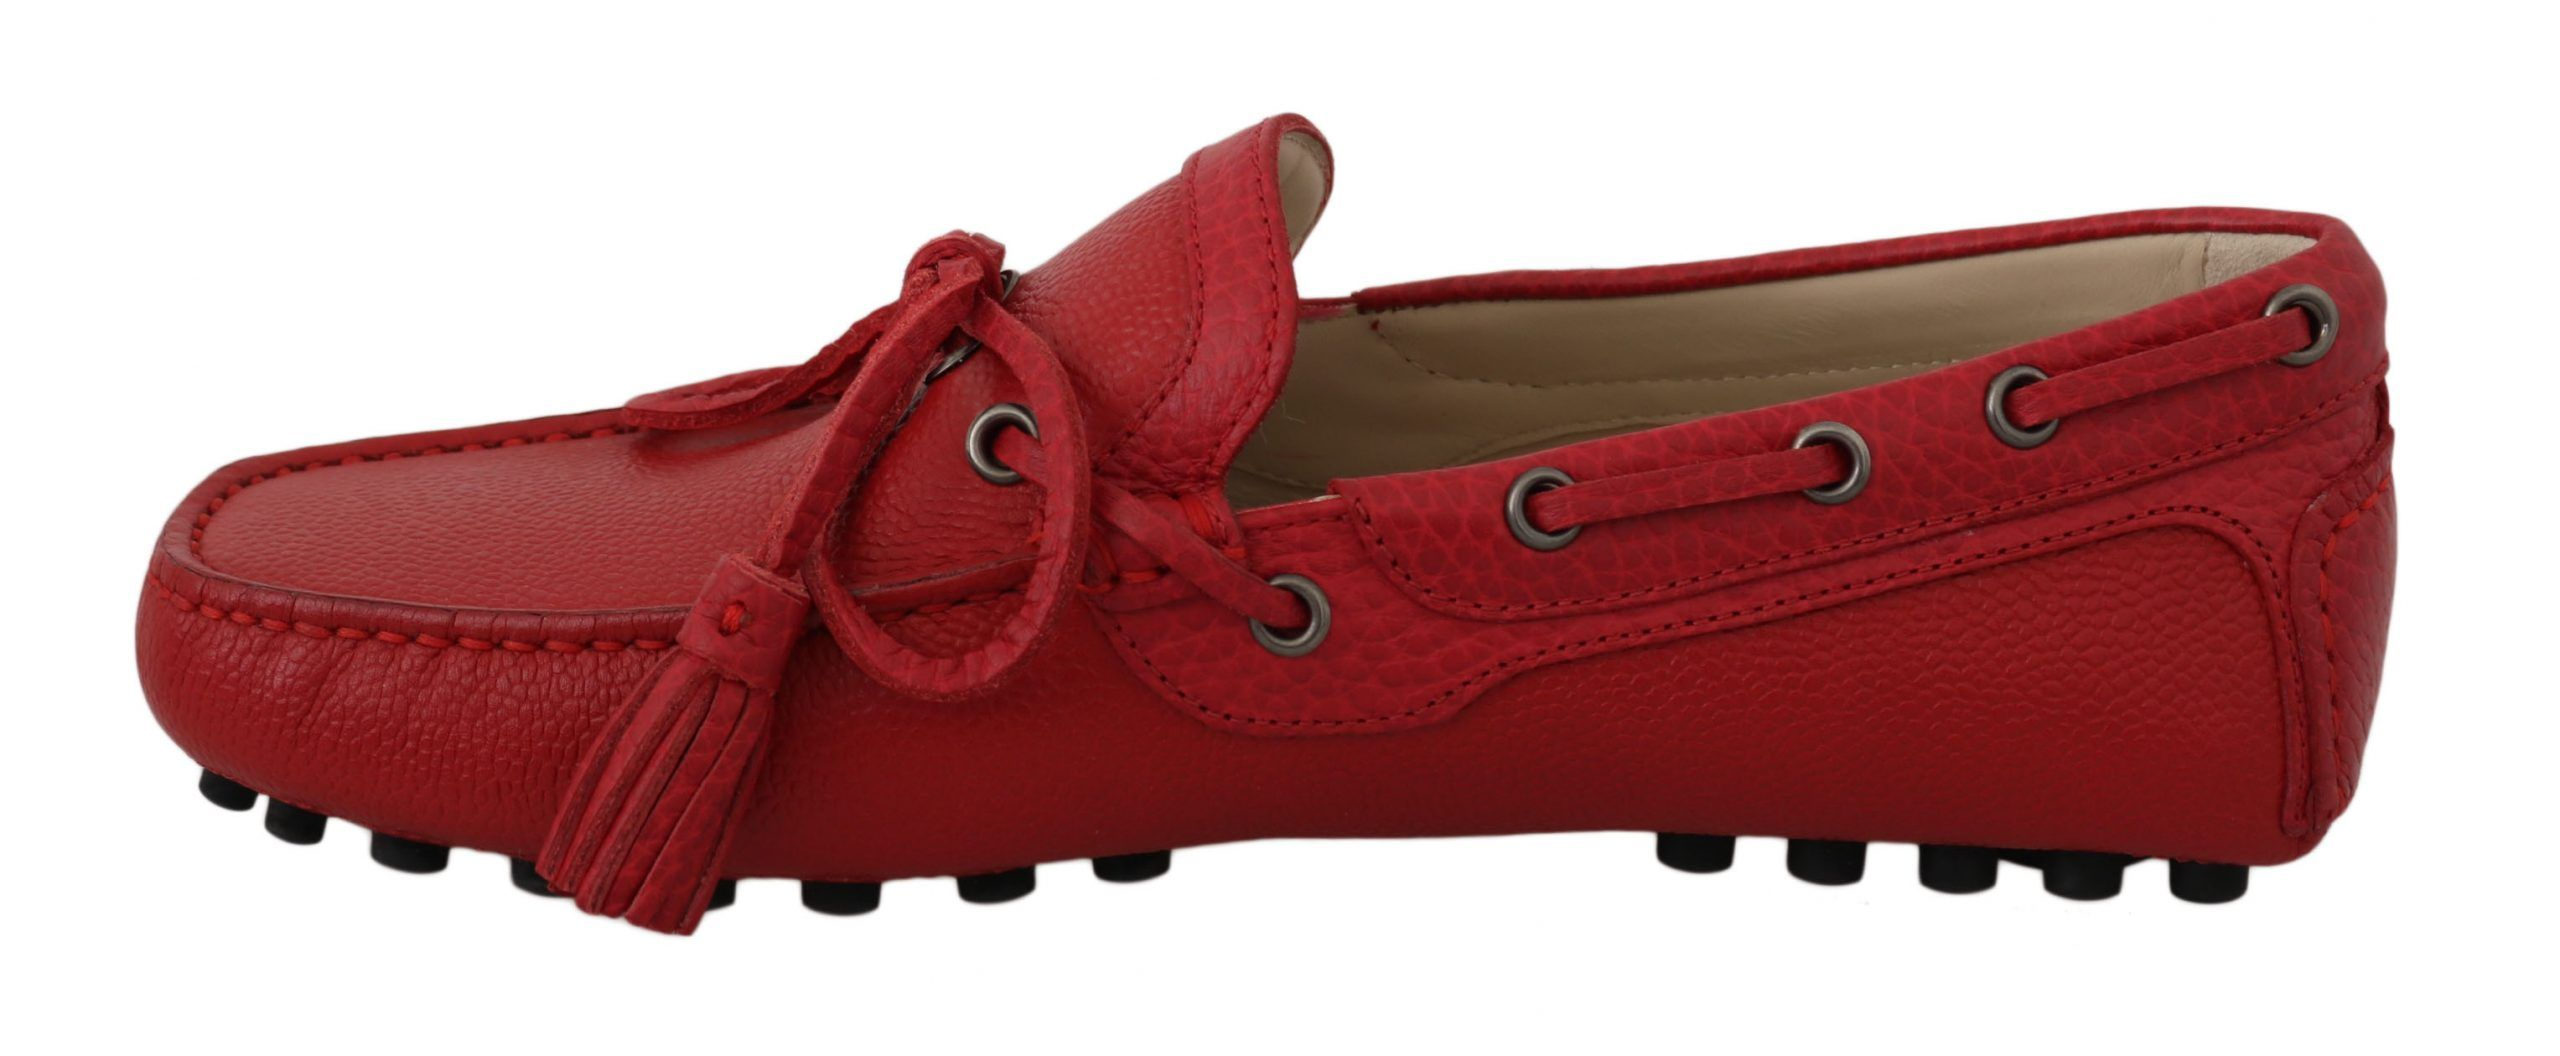 Dolce & Gabbana Red Leather Flat Loafers Moccasin Mens Shoes